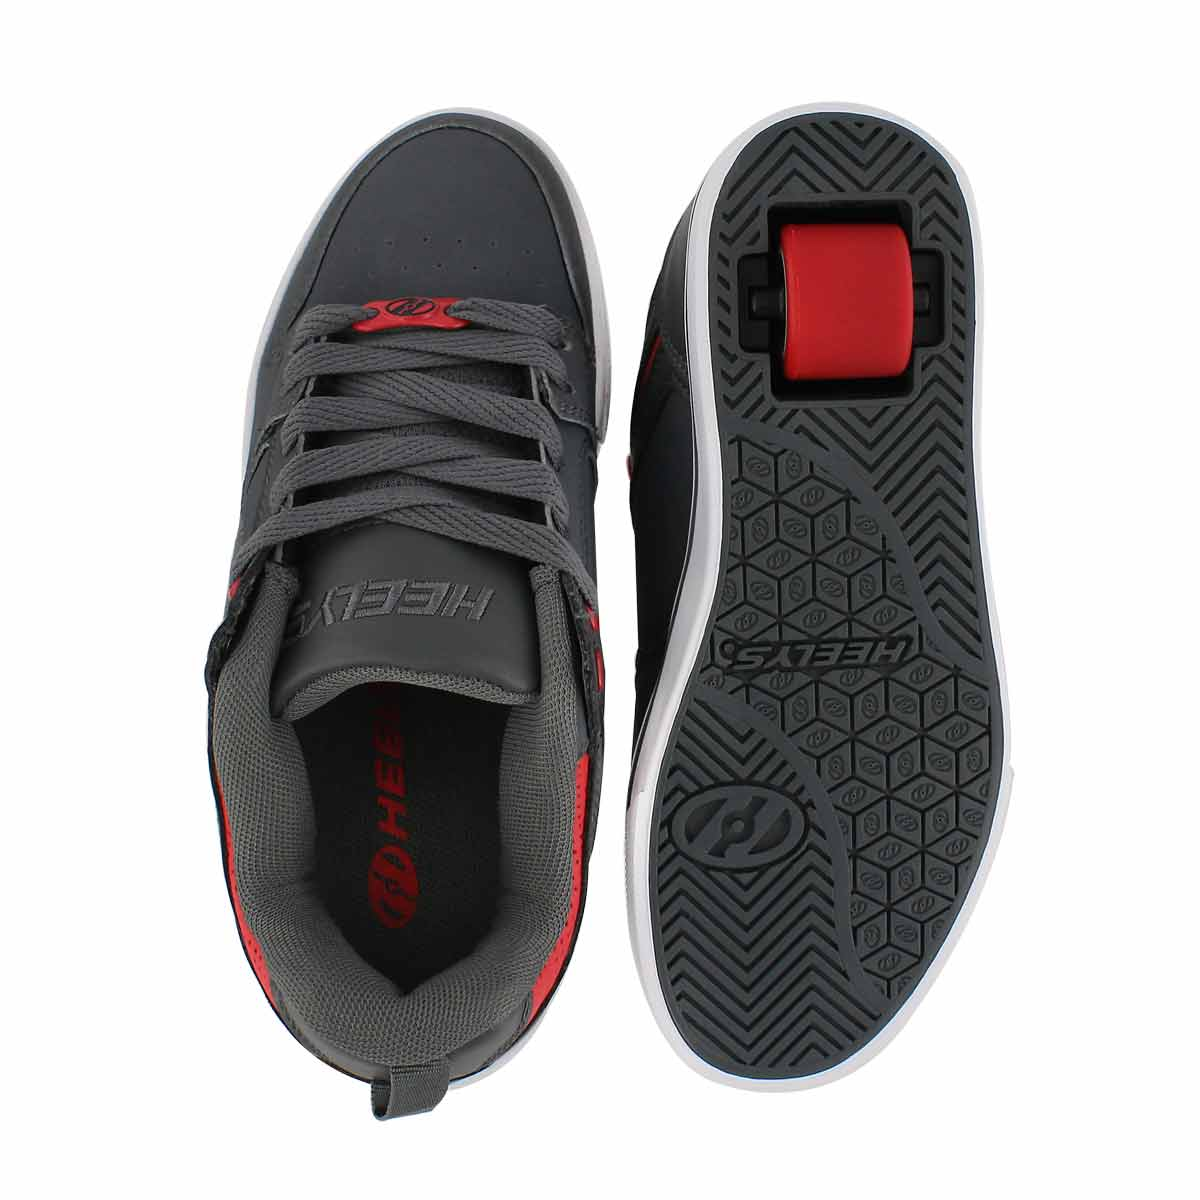 Bys Motion 2.0 char/red skate sneaker